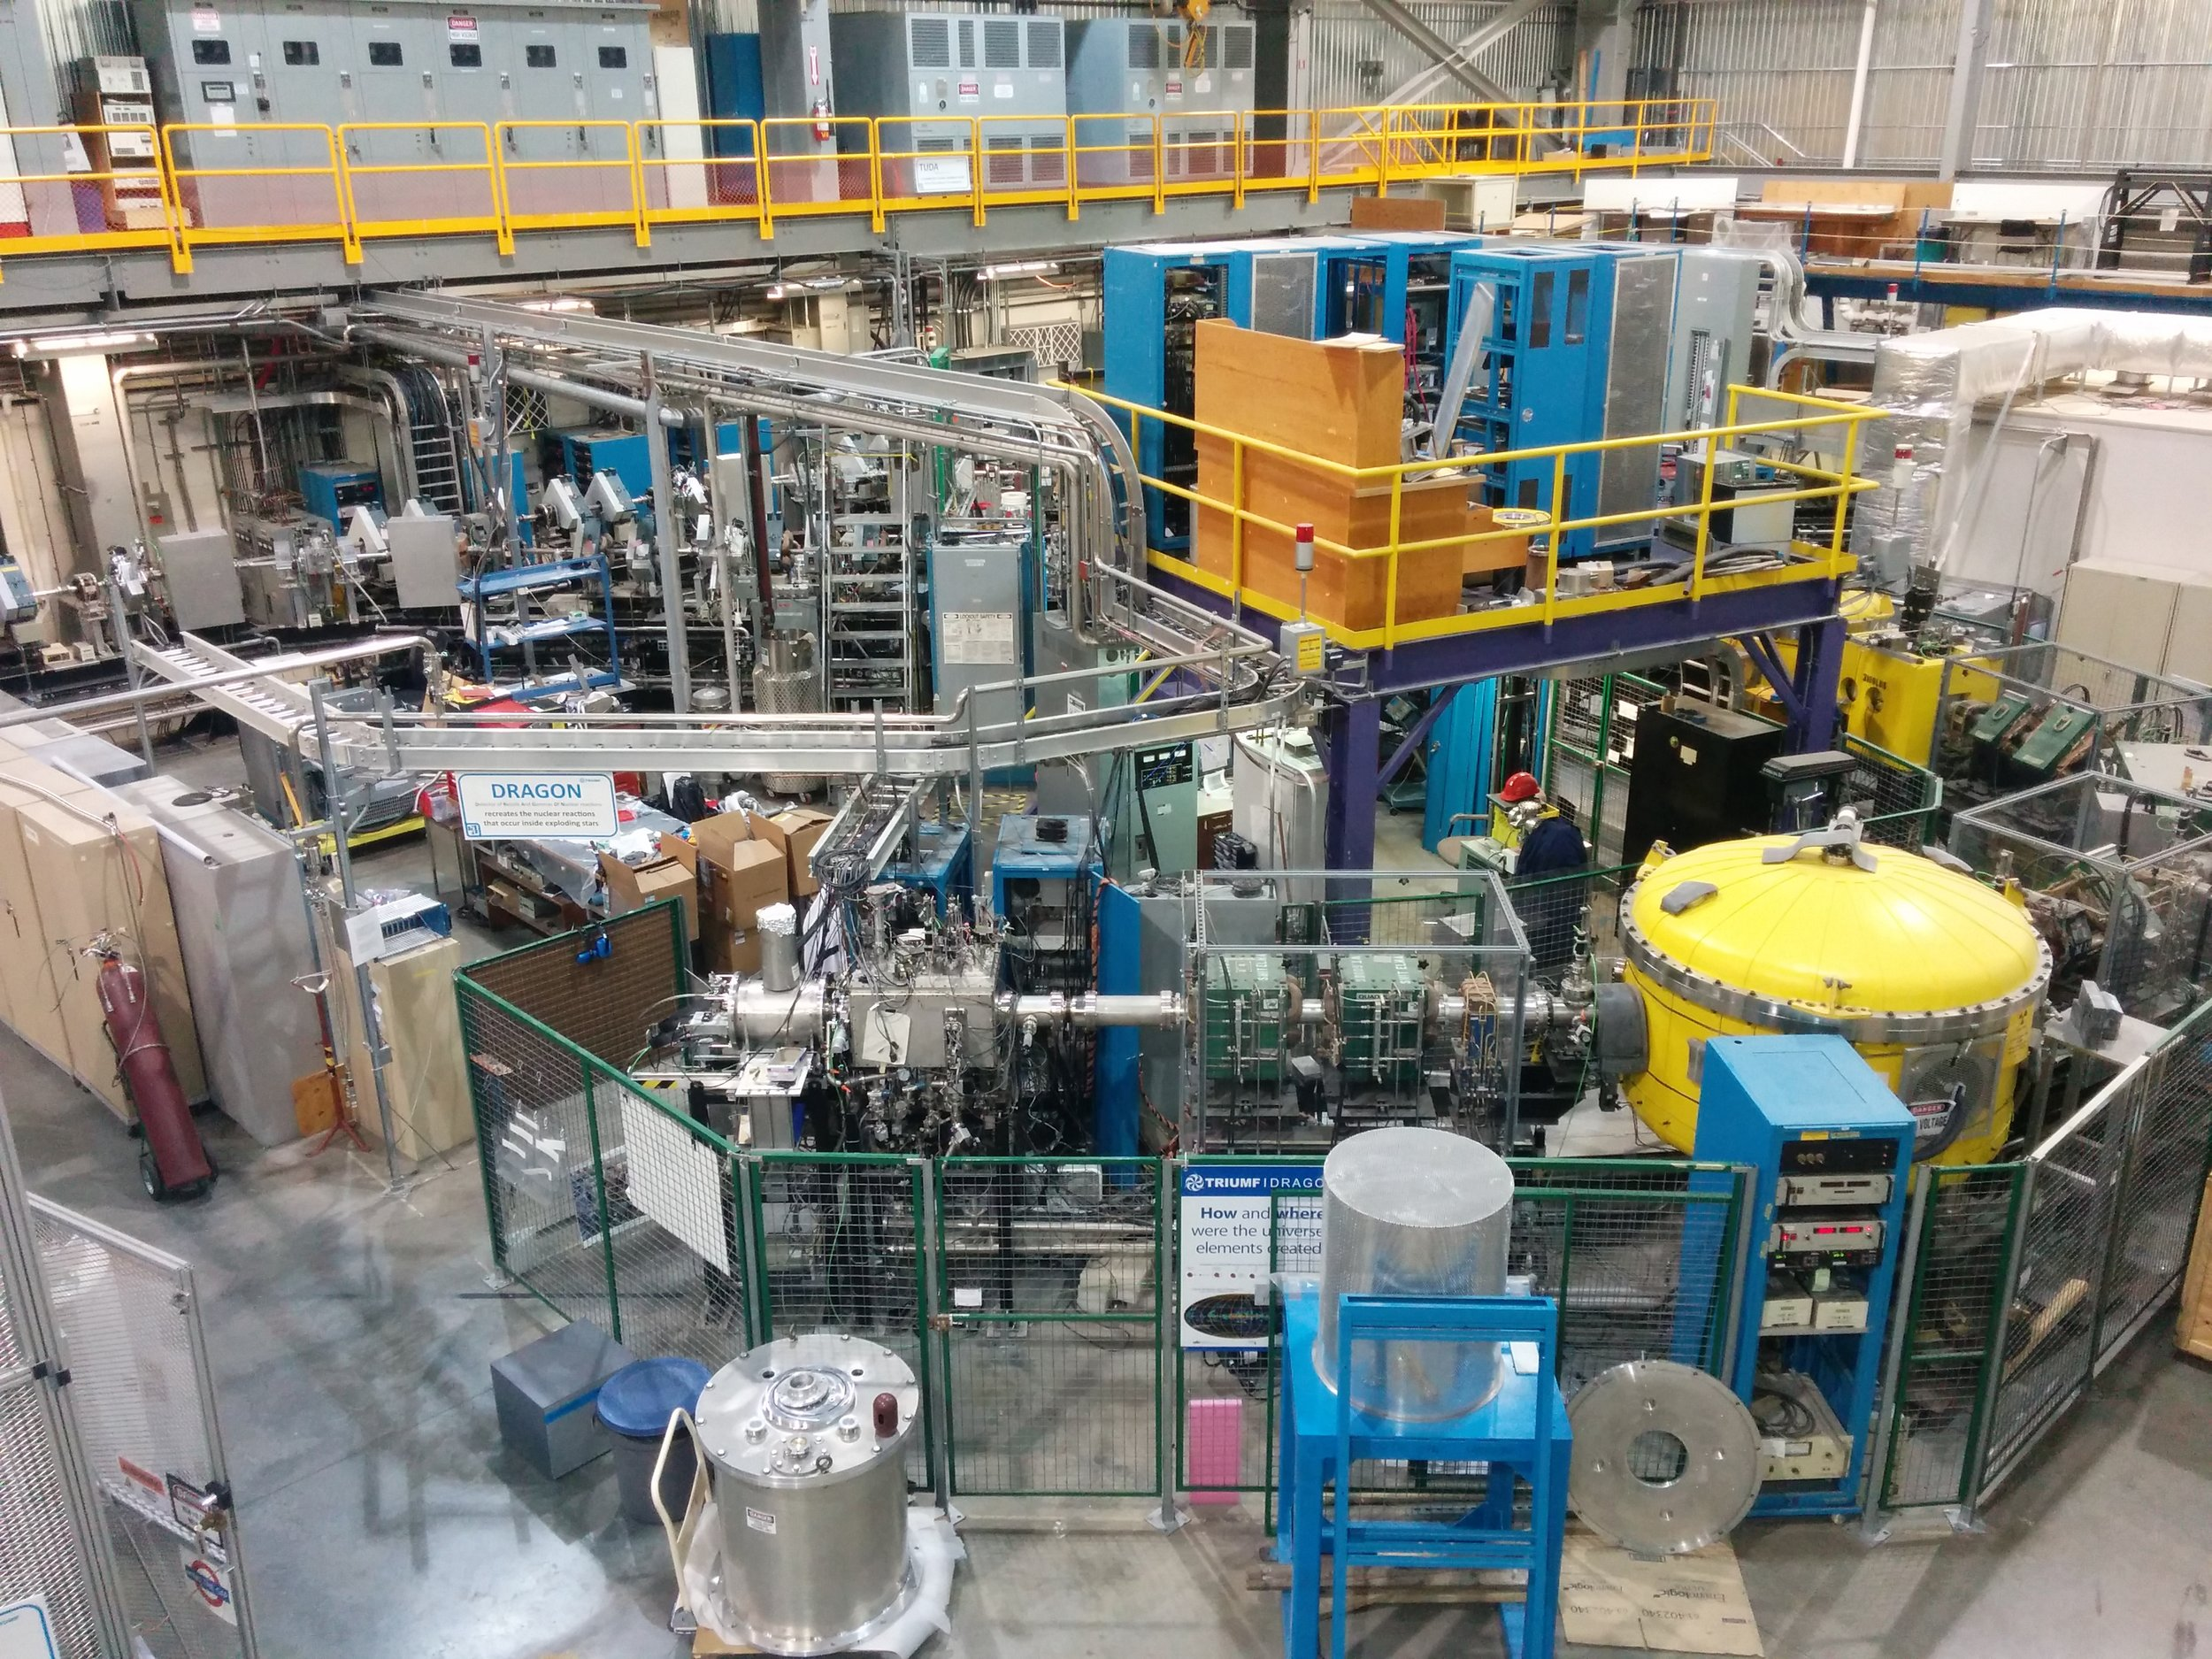 The Dragon facility - is part of the TRIUMF, Canada's national laboratory for particle and nuclear physics and accelerator-based science.Dragon is the facility where Thanassis conducts his experiments.